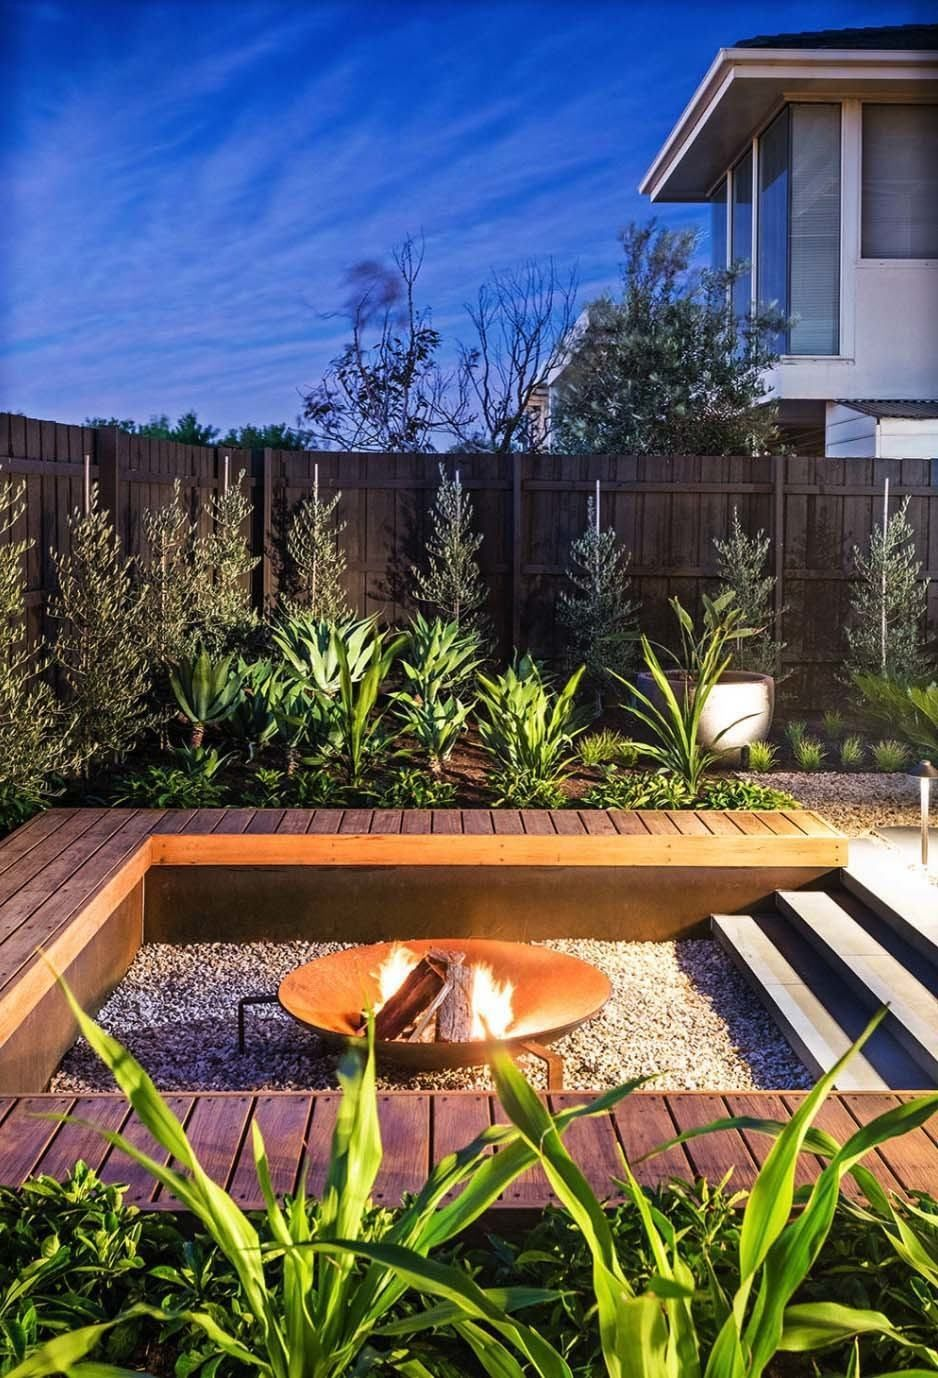 35 modern outdoor patio designs that will blow your mind on modern deck patio ideas for backyard design and decoration ideas id=23701